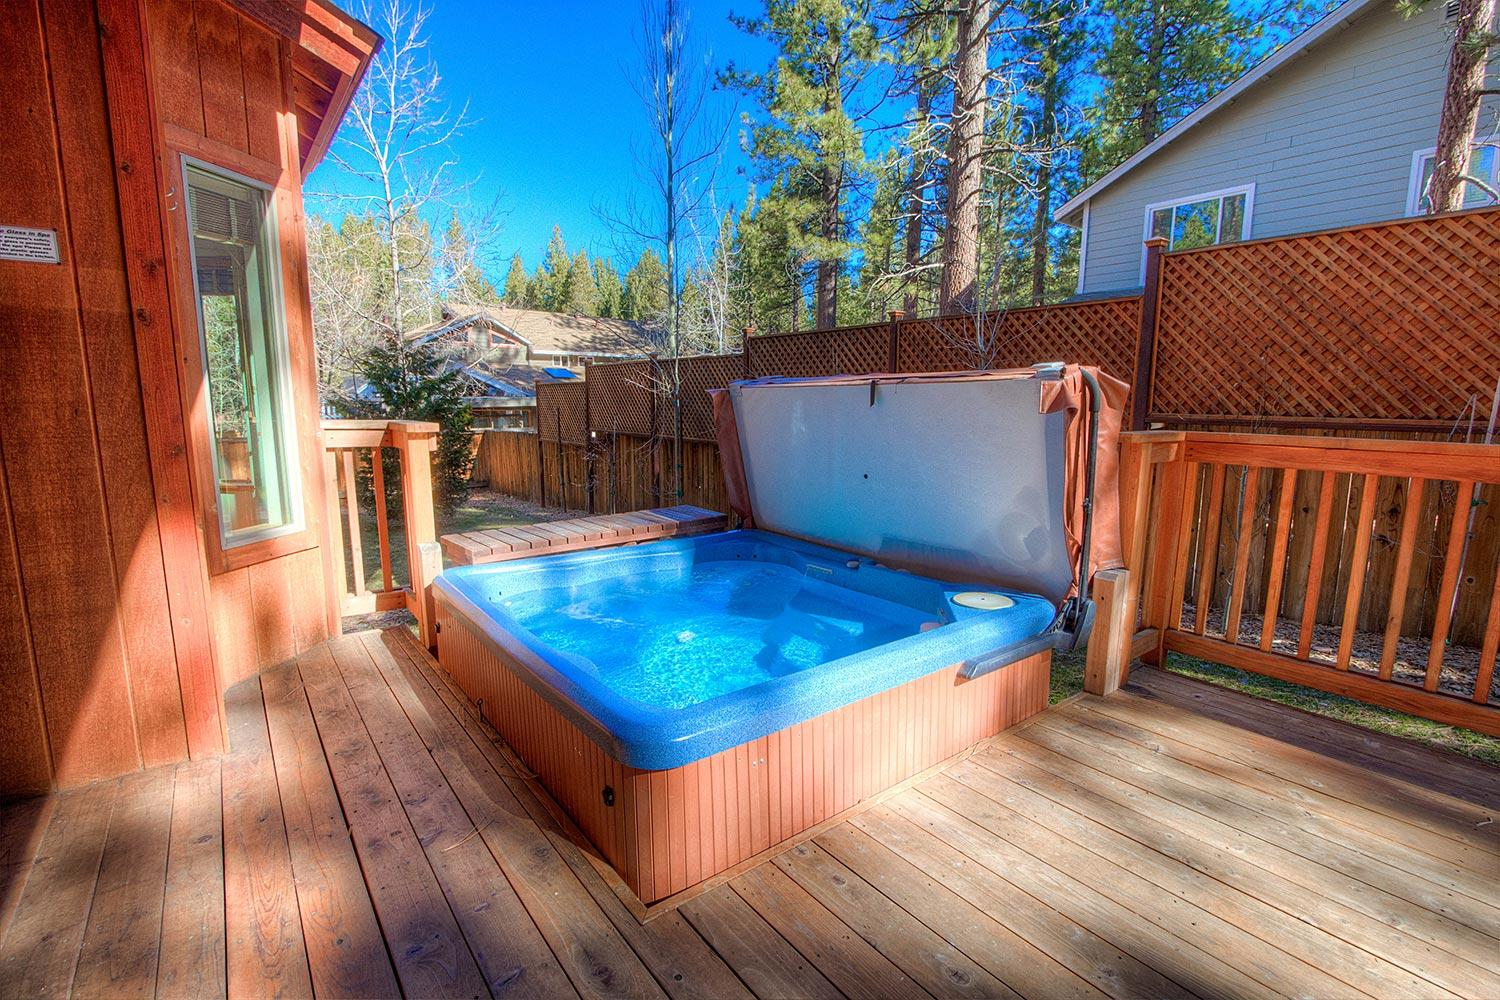 hch1023 hot tub